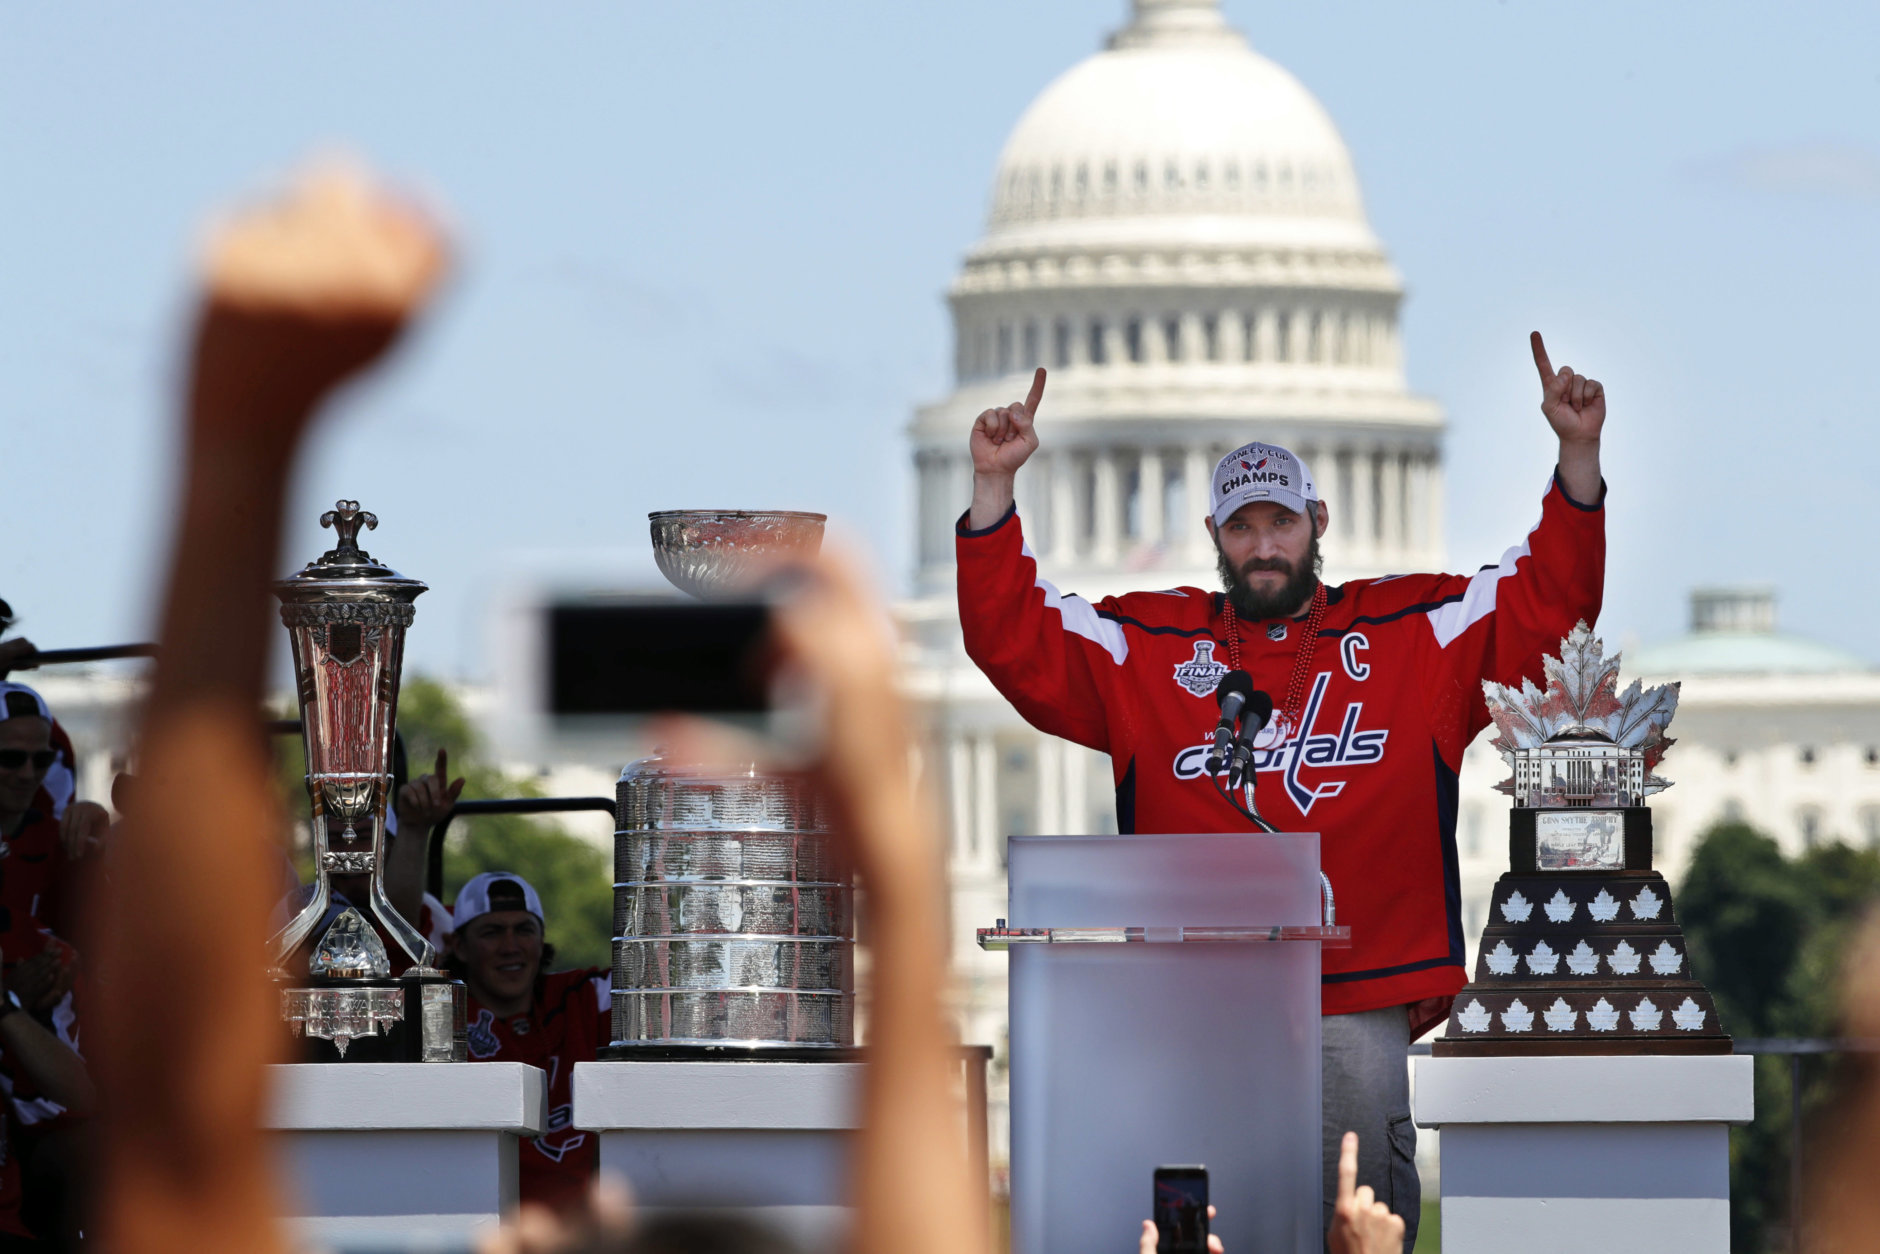 Washington Capitals Alex Ovechkin, from Russia, gestures during the NHL hockey team's Stanley Cup victory celebration, Tuesday, June 12, 2018, on the National Mall in Washington. The U.S. Capitol rises n the background(AP Photo/Jacquelyn Martin)